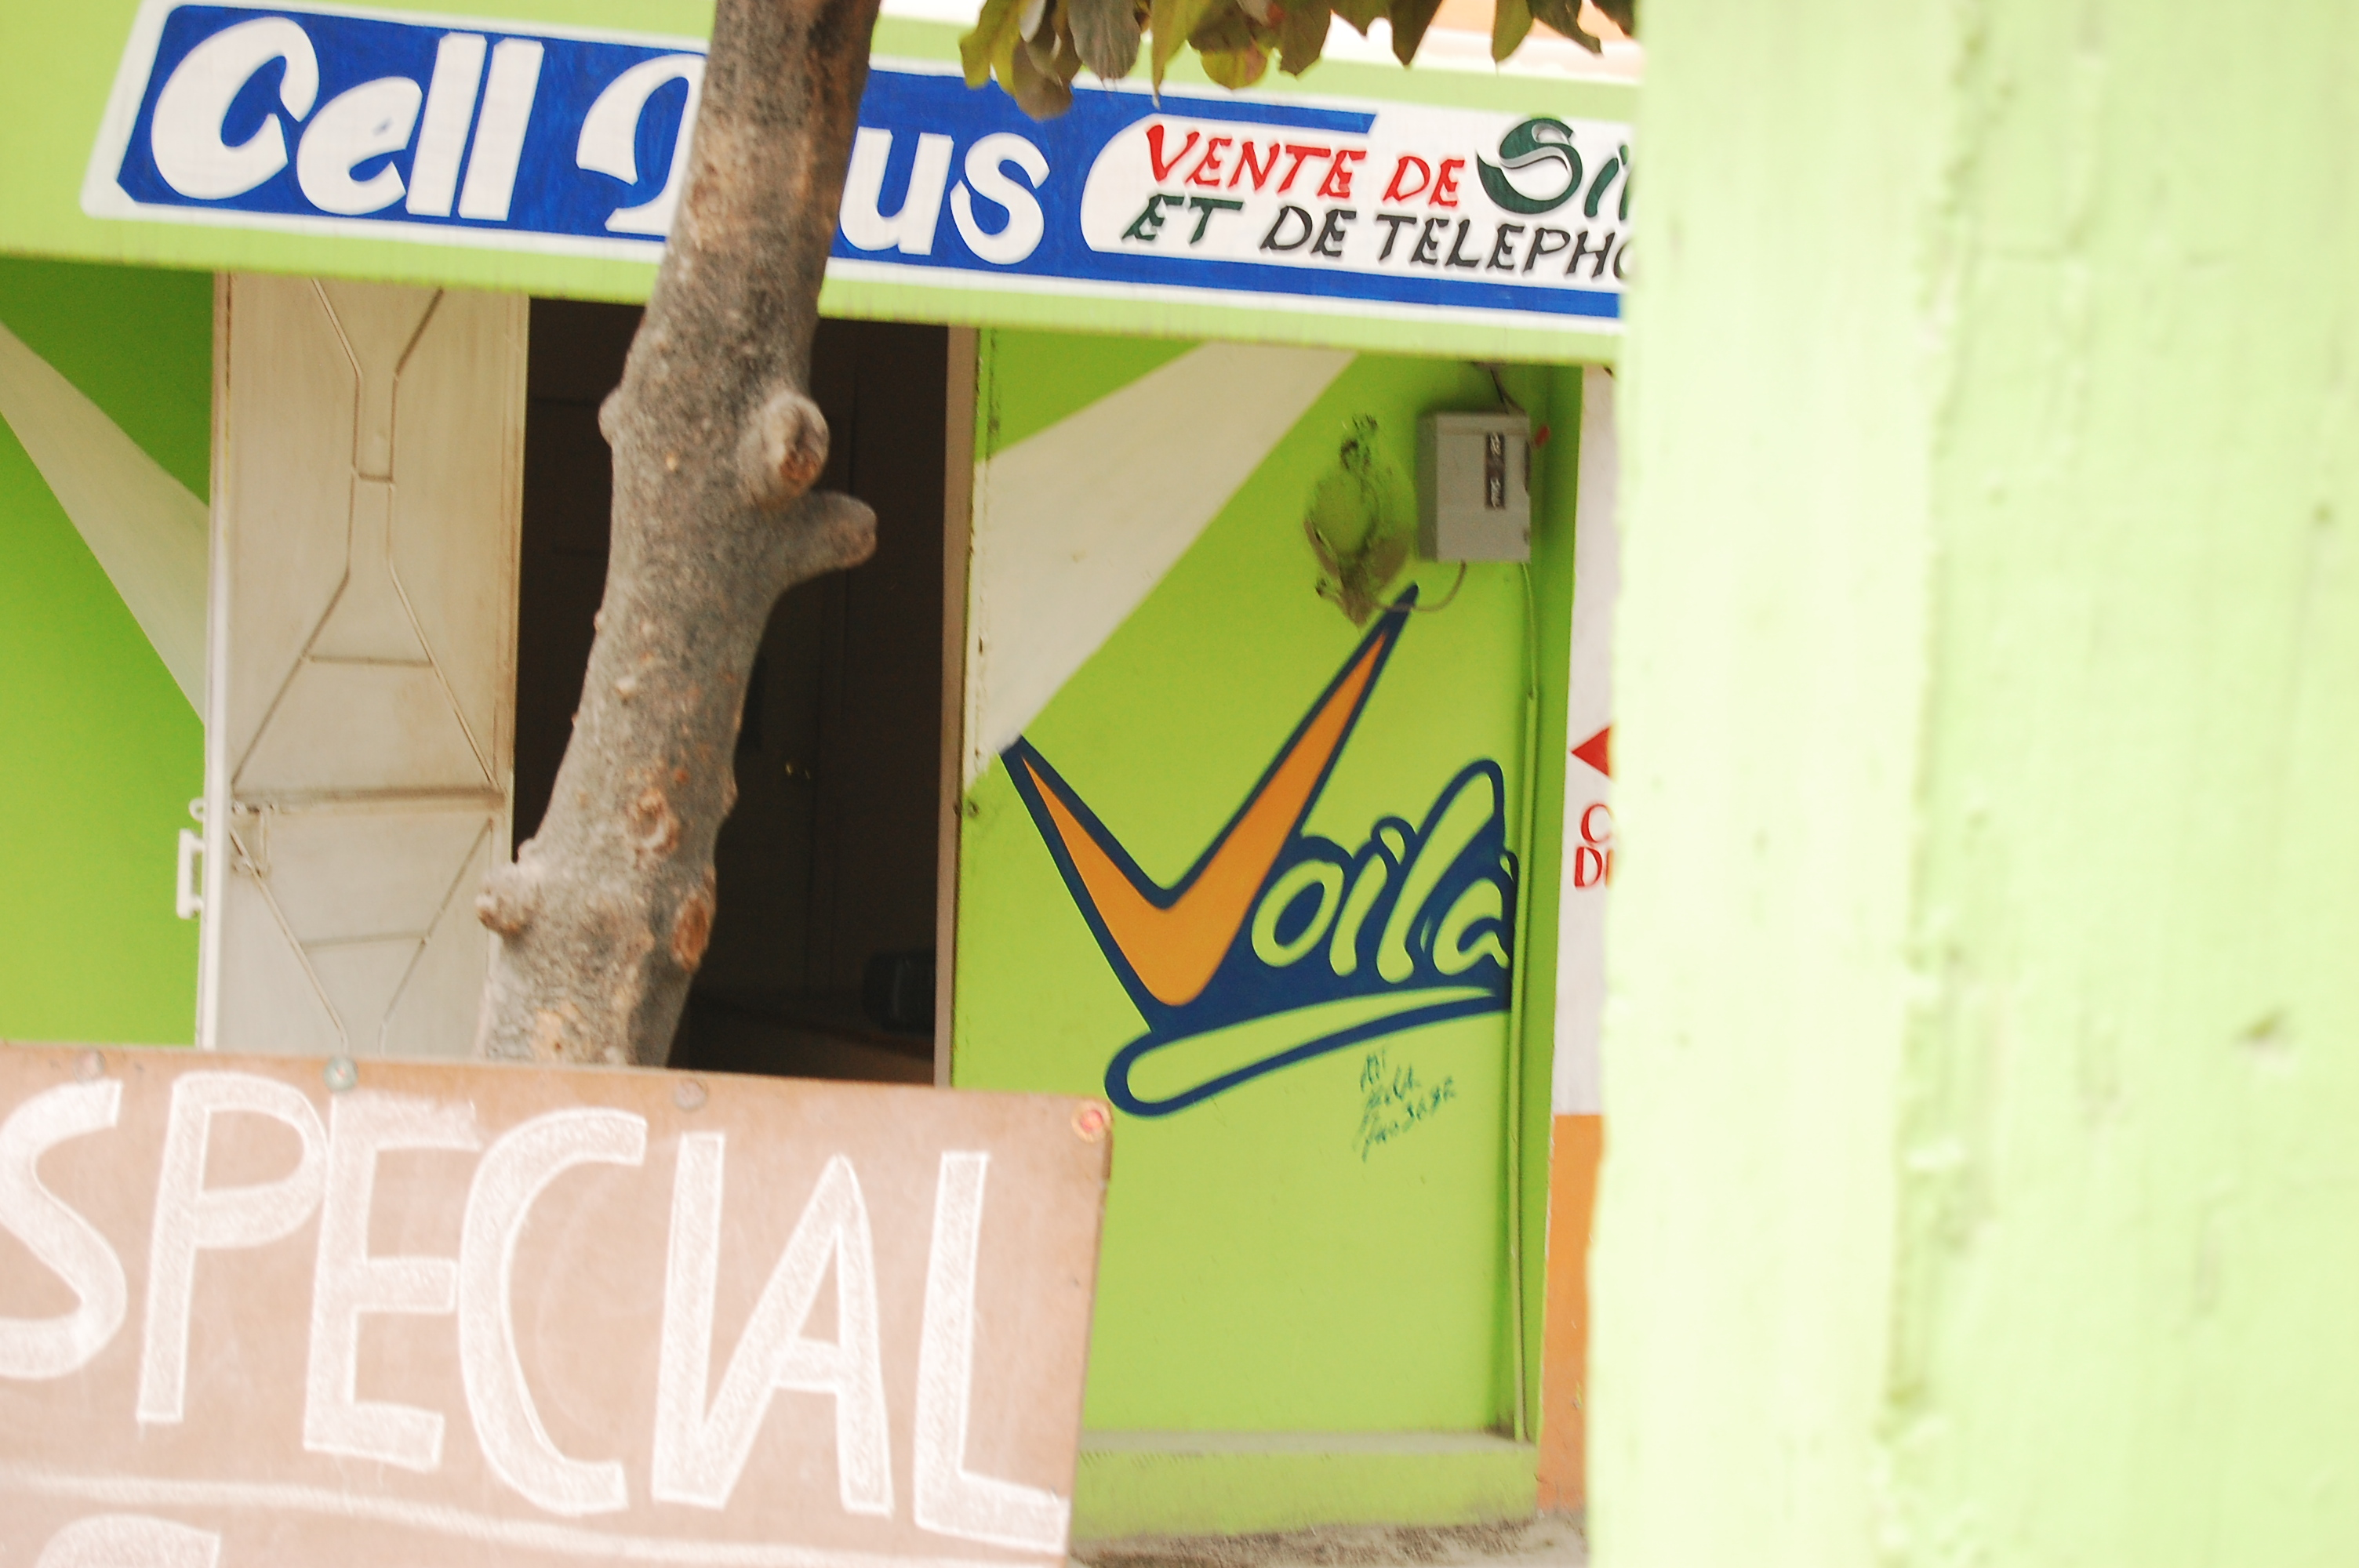 Voila Haiti Sign Store